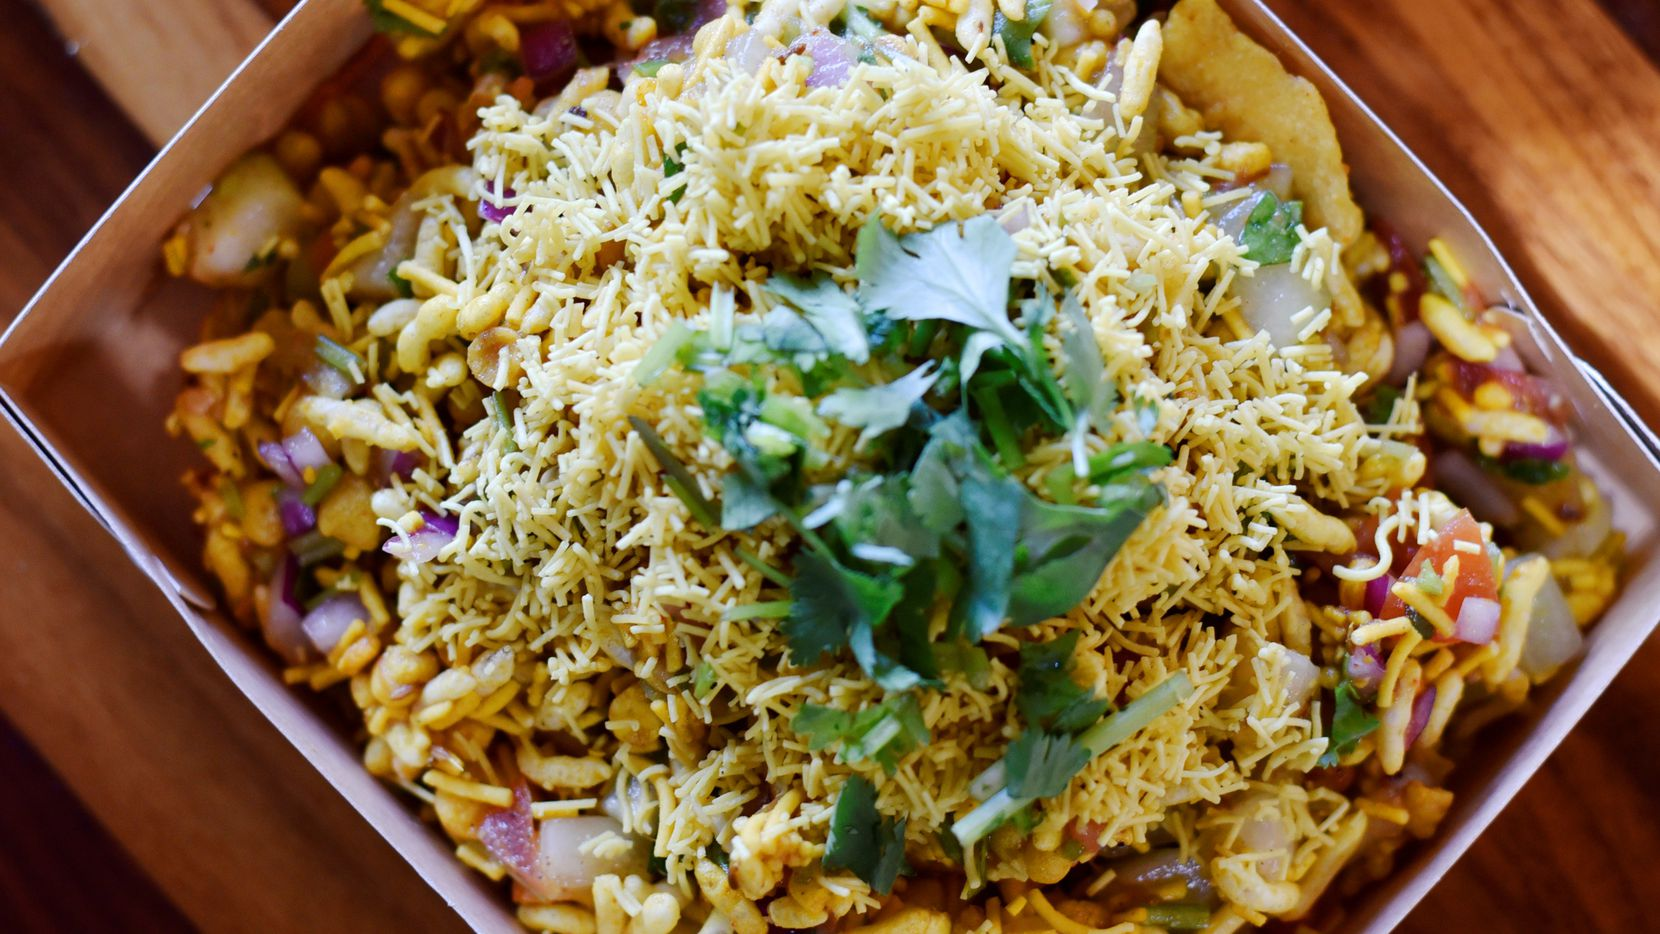 The lipsmacking bhel puri at Desi District in Irving